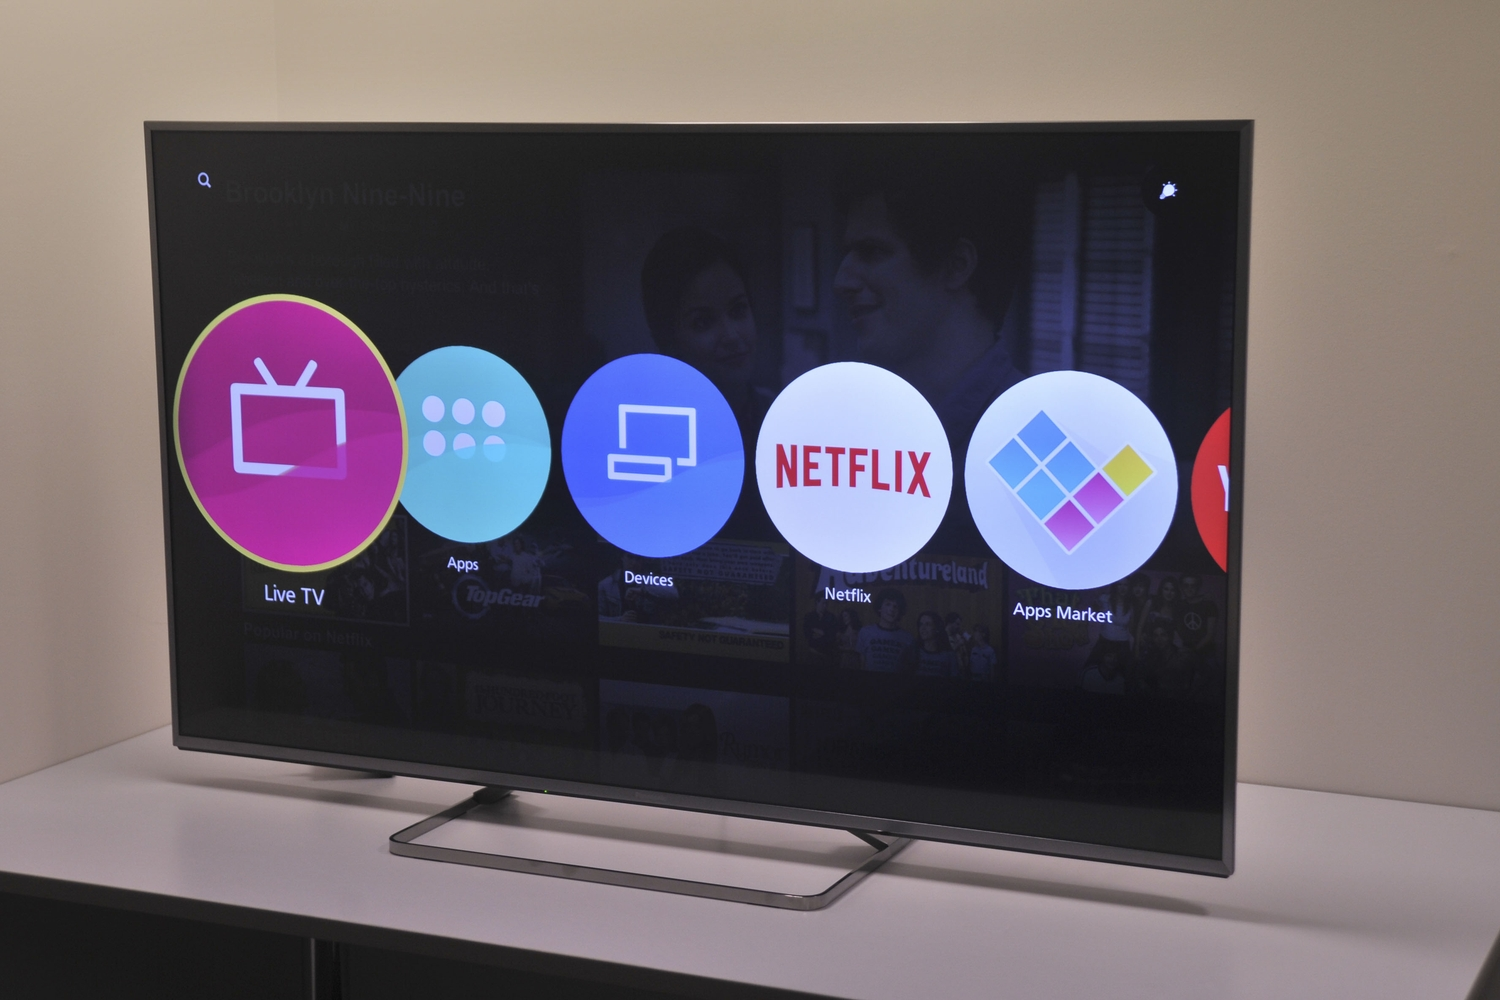 panasonic viera 60xc700a review great picture quality let down by bipolar software leaving. Black Bedroom Furniture Sets. Home Design Ideas